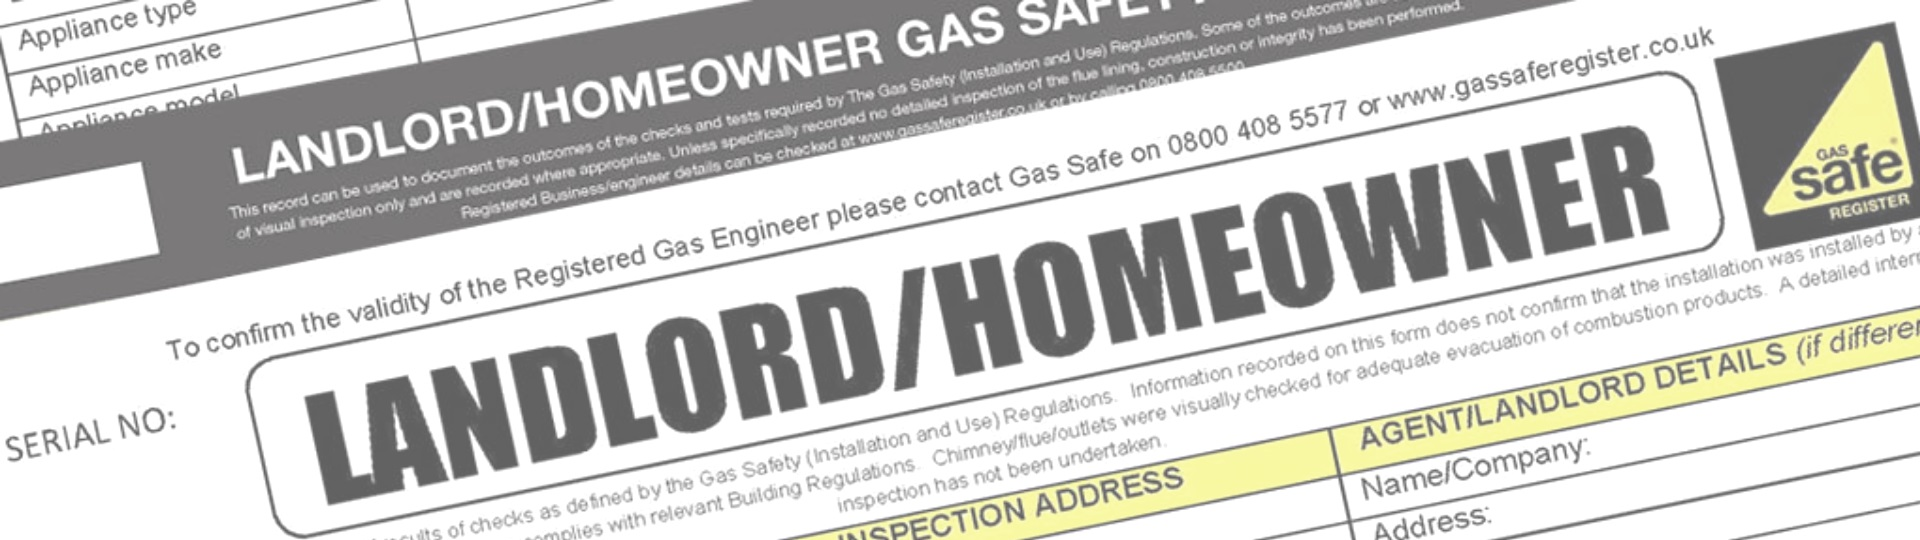 Gas Saftey Certificates Barrs Court